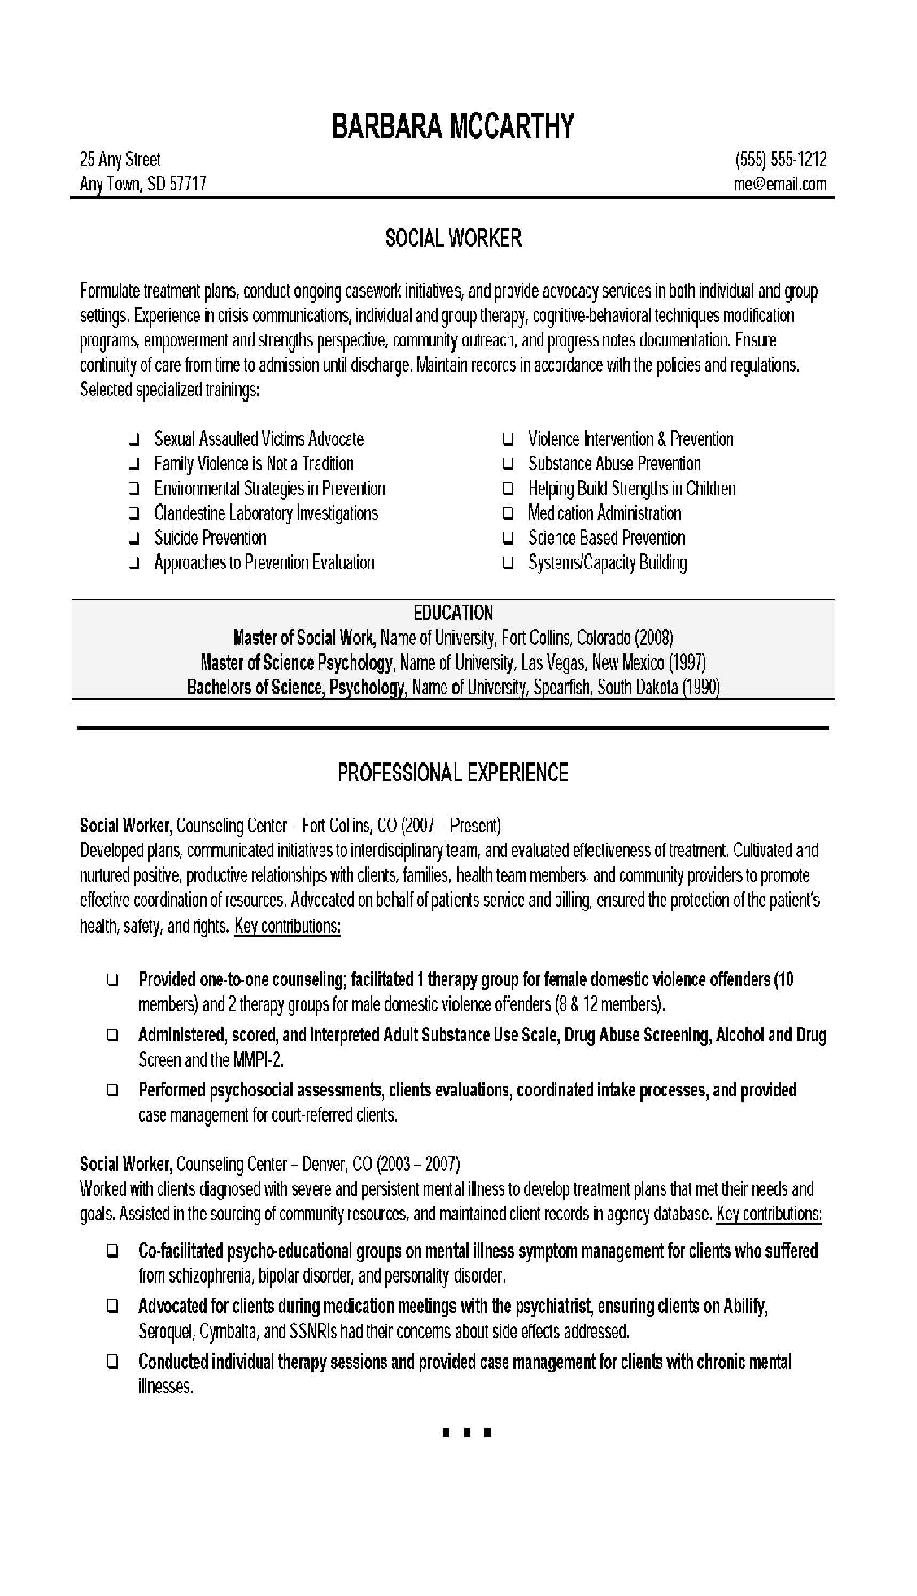 social work resume objective statement com social work resume templates to goals and objectives